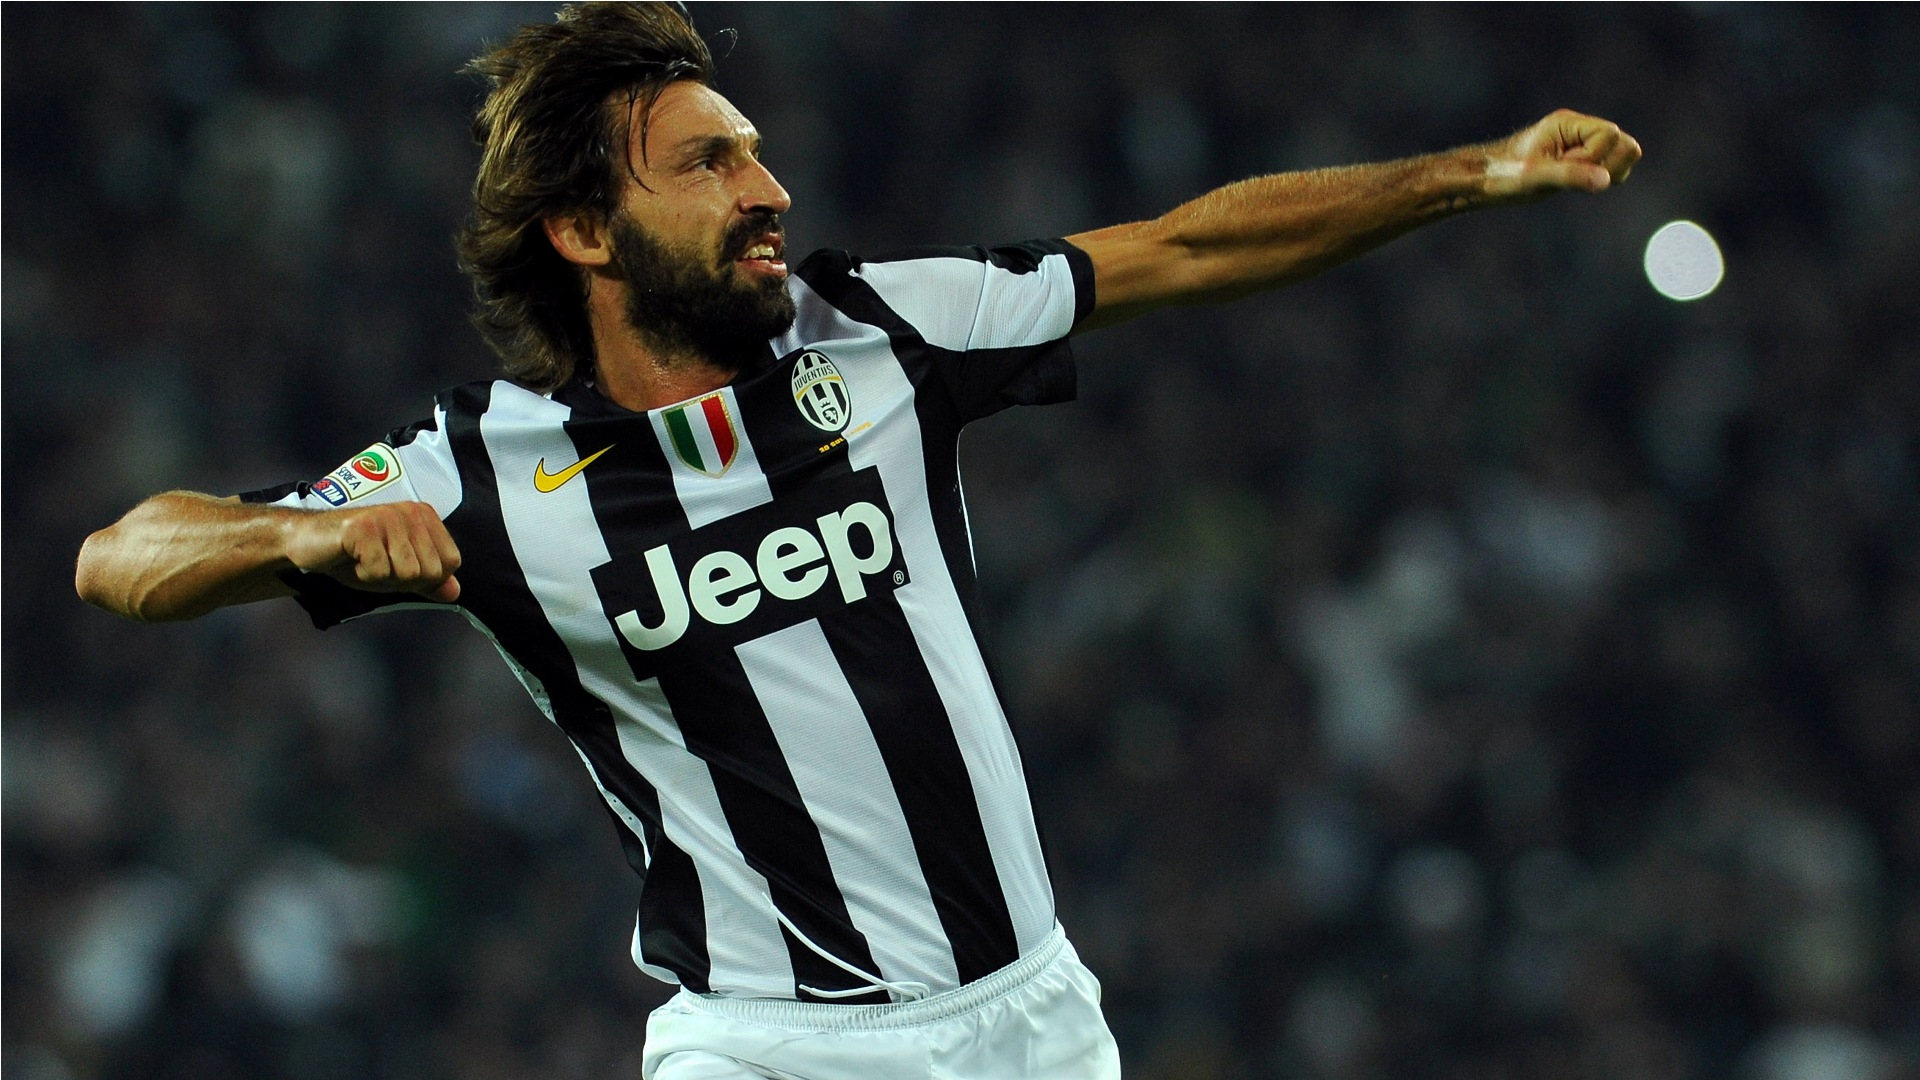 Andrea Pirlo Wallpaper 2014 8